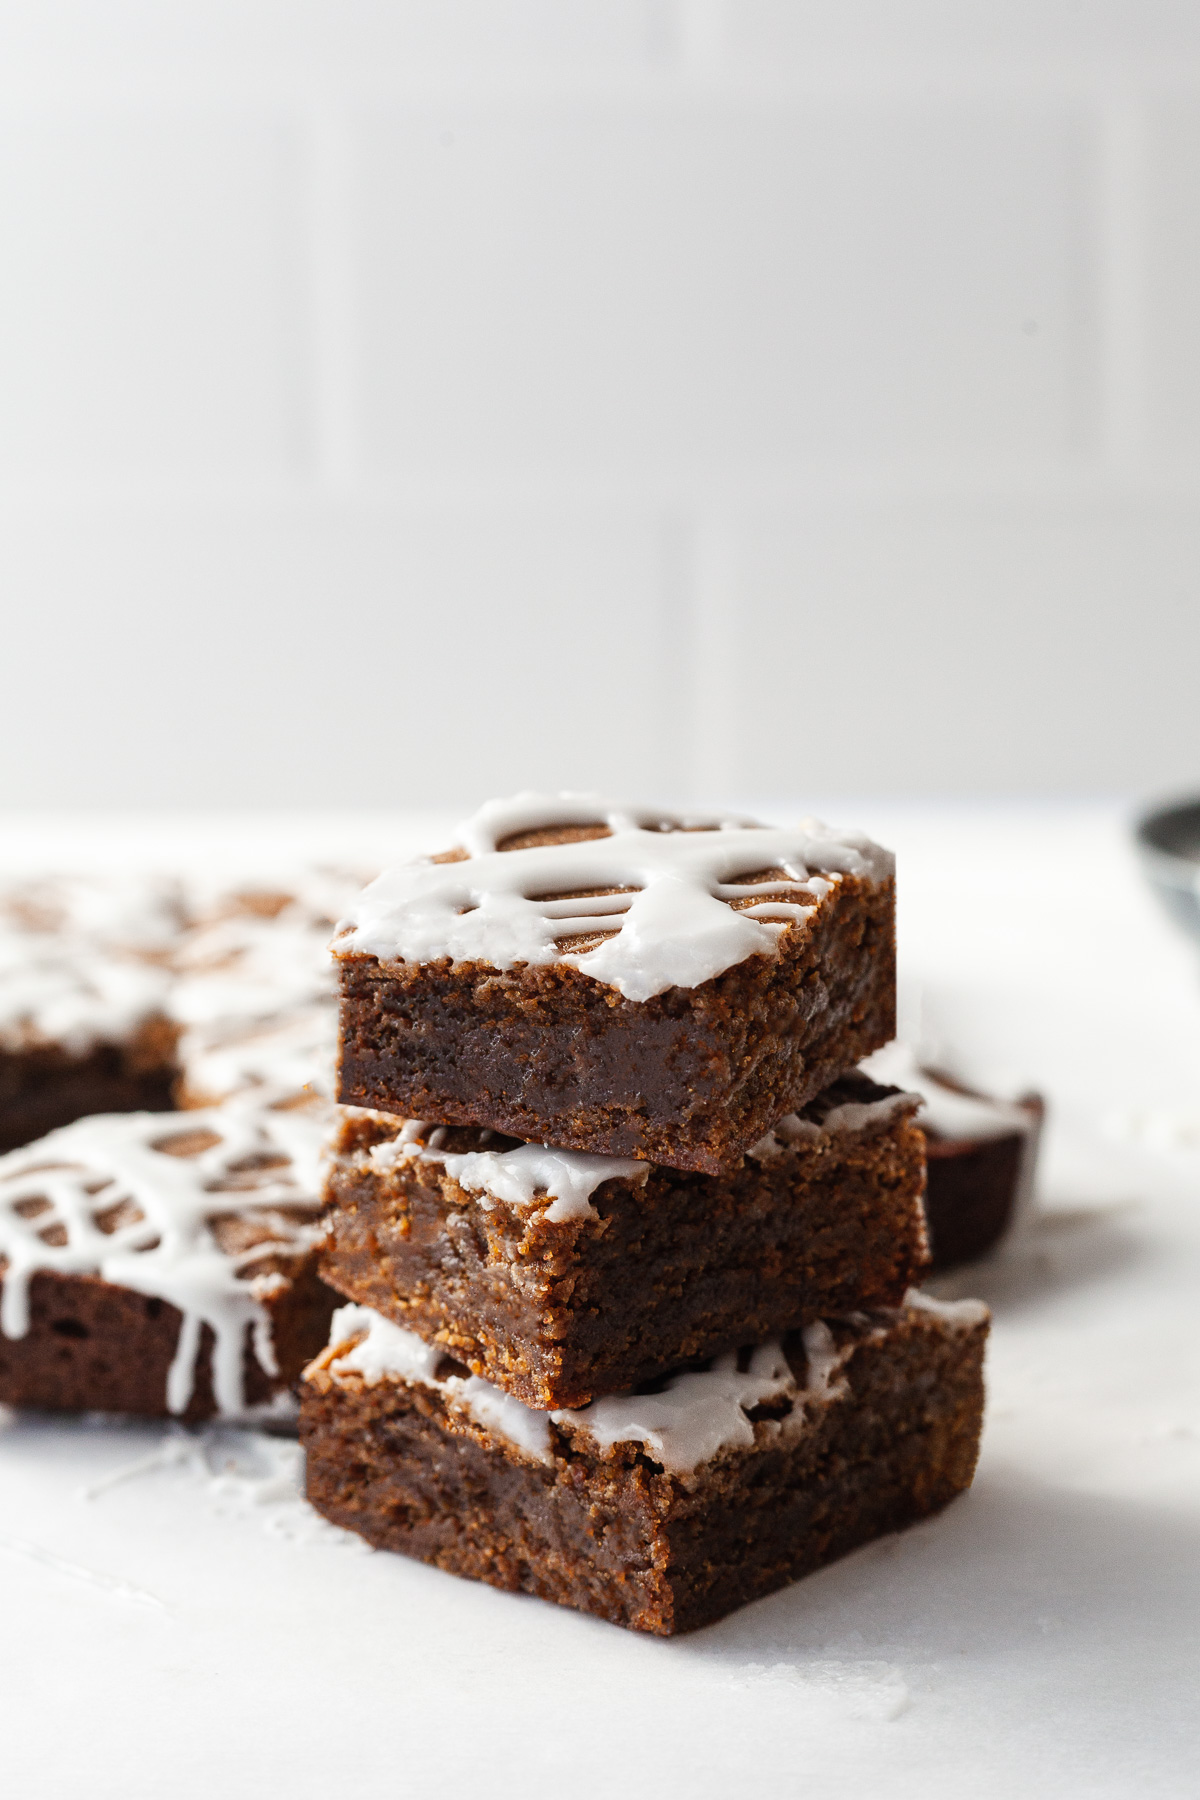 image of 3 gingerbread bars stacked on top of each other